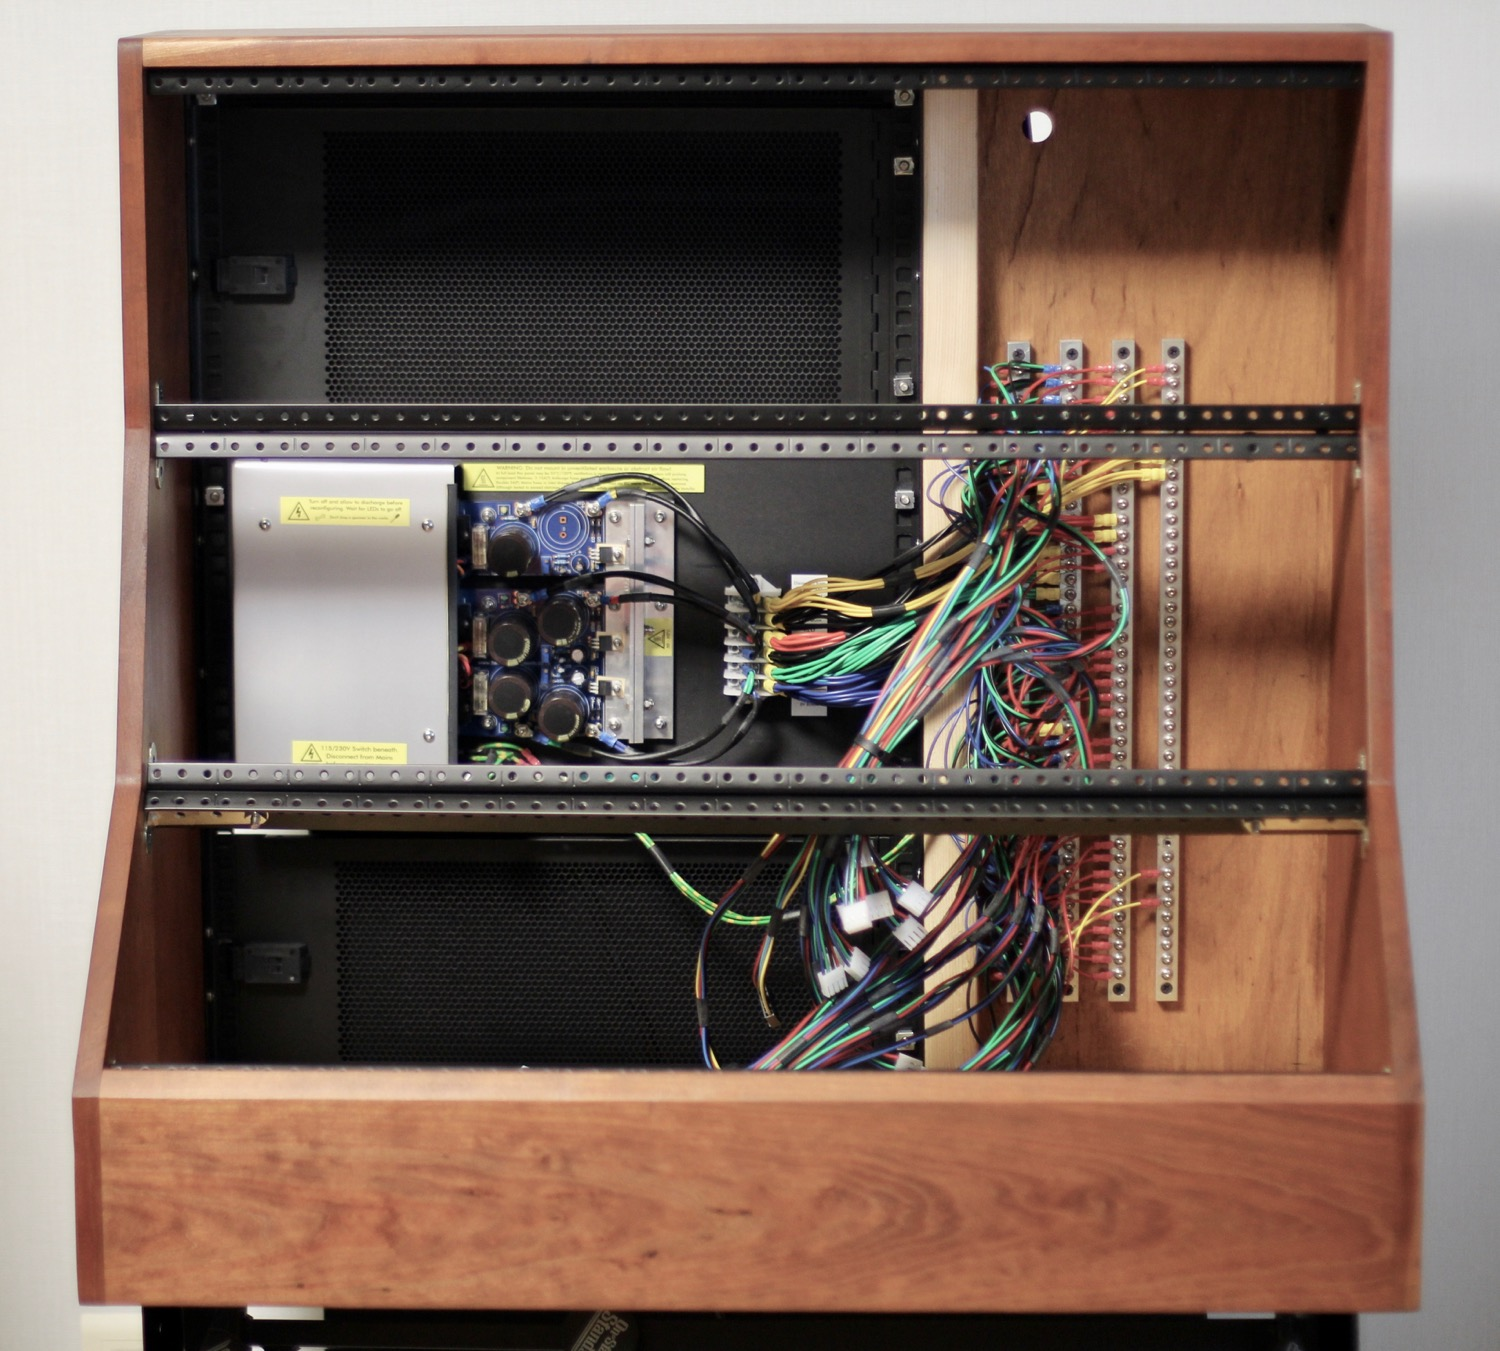 Installed busbar power distribution system, and metal mounting rails for modules